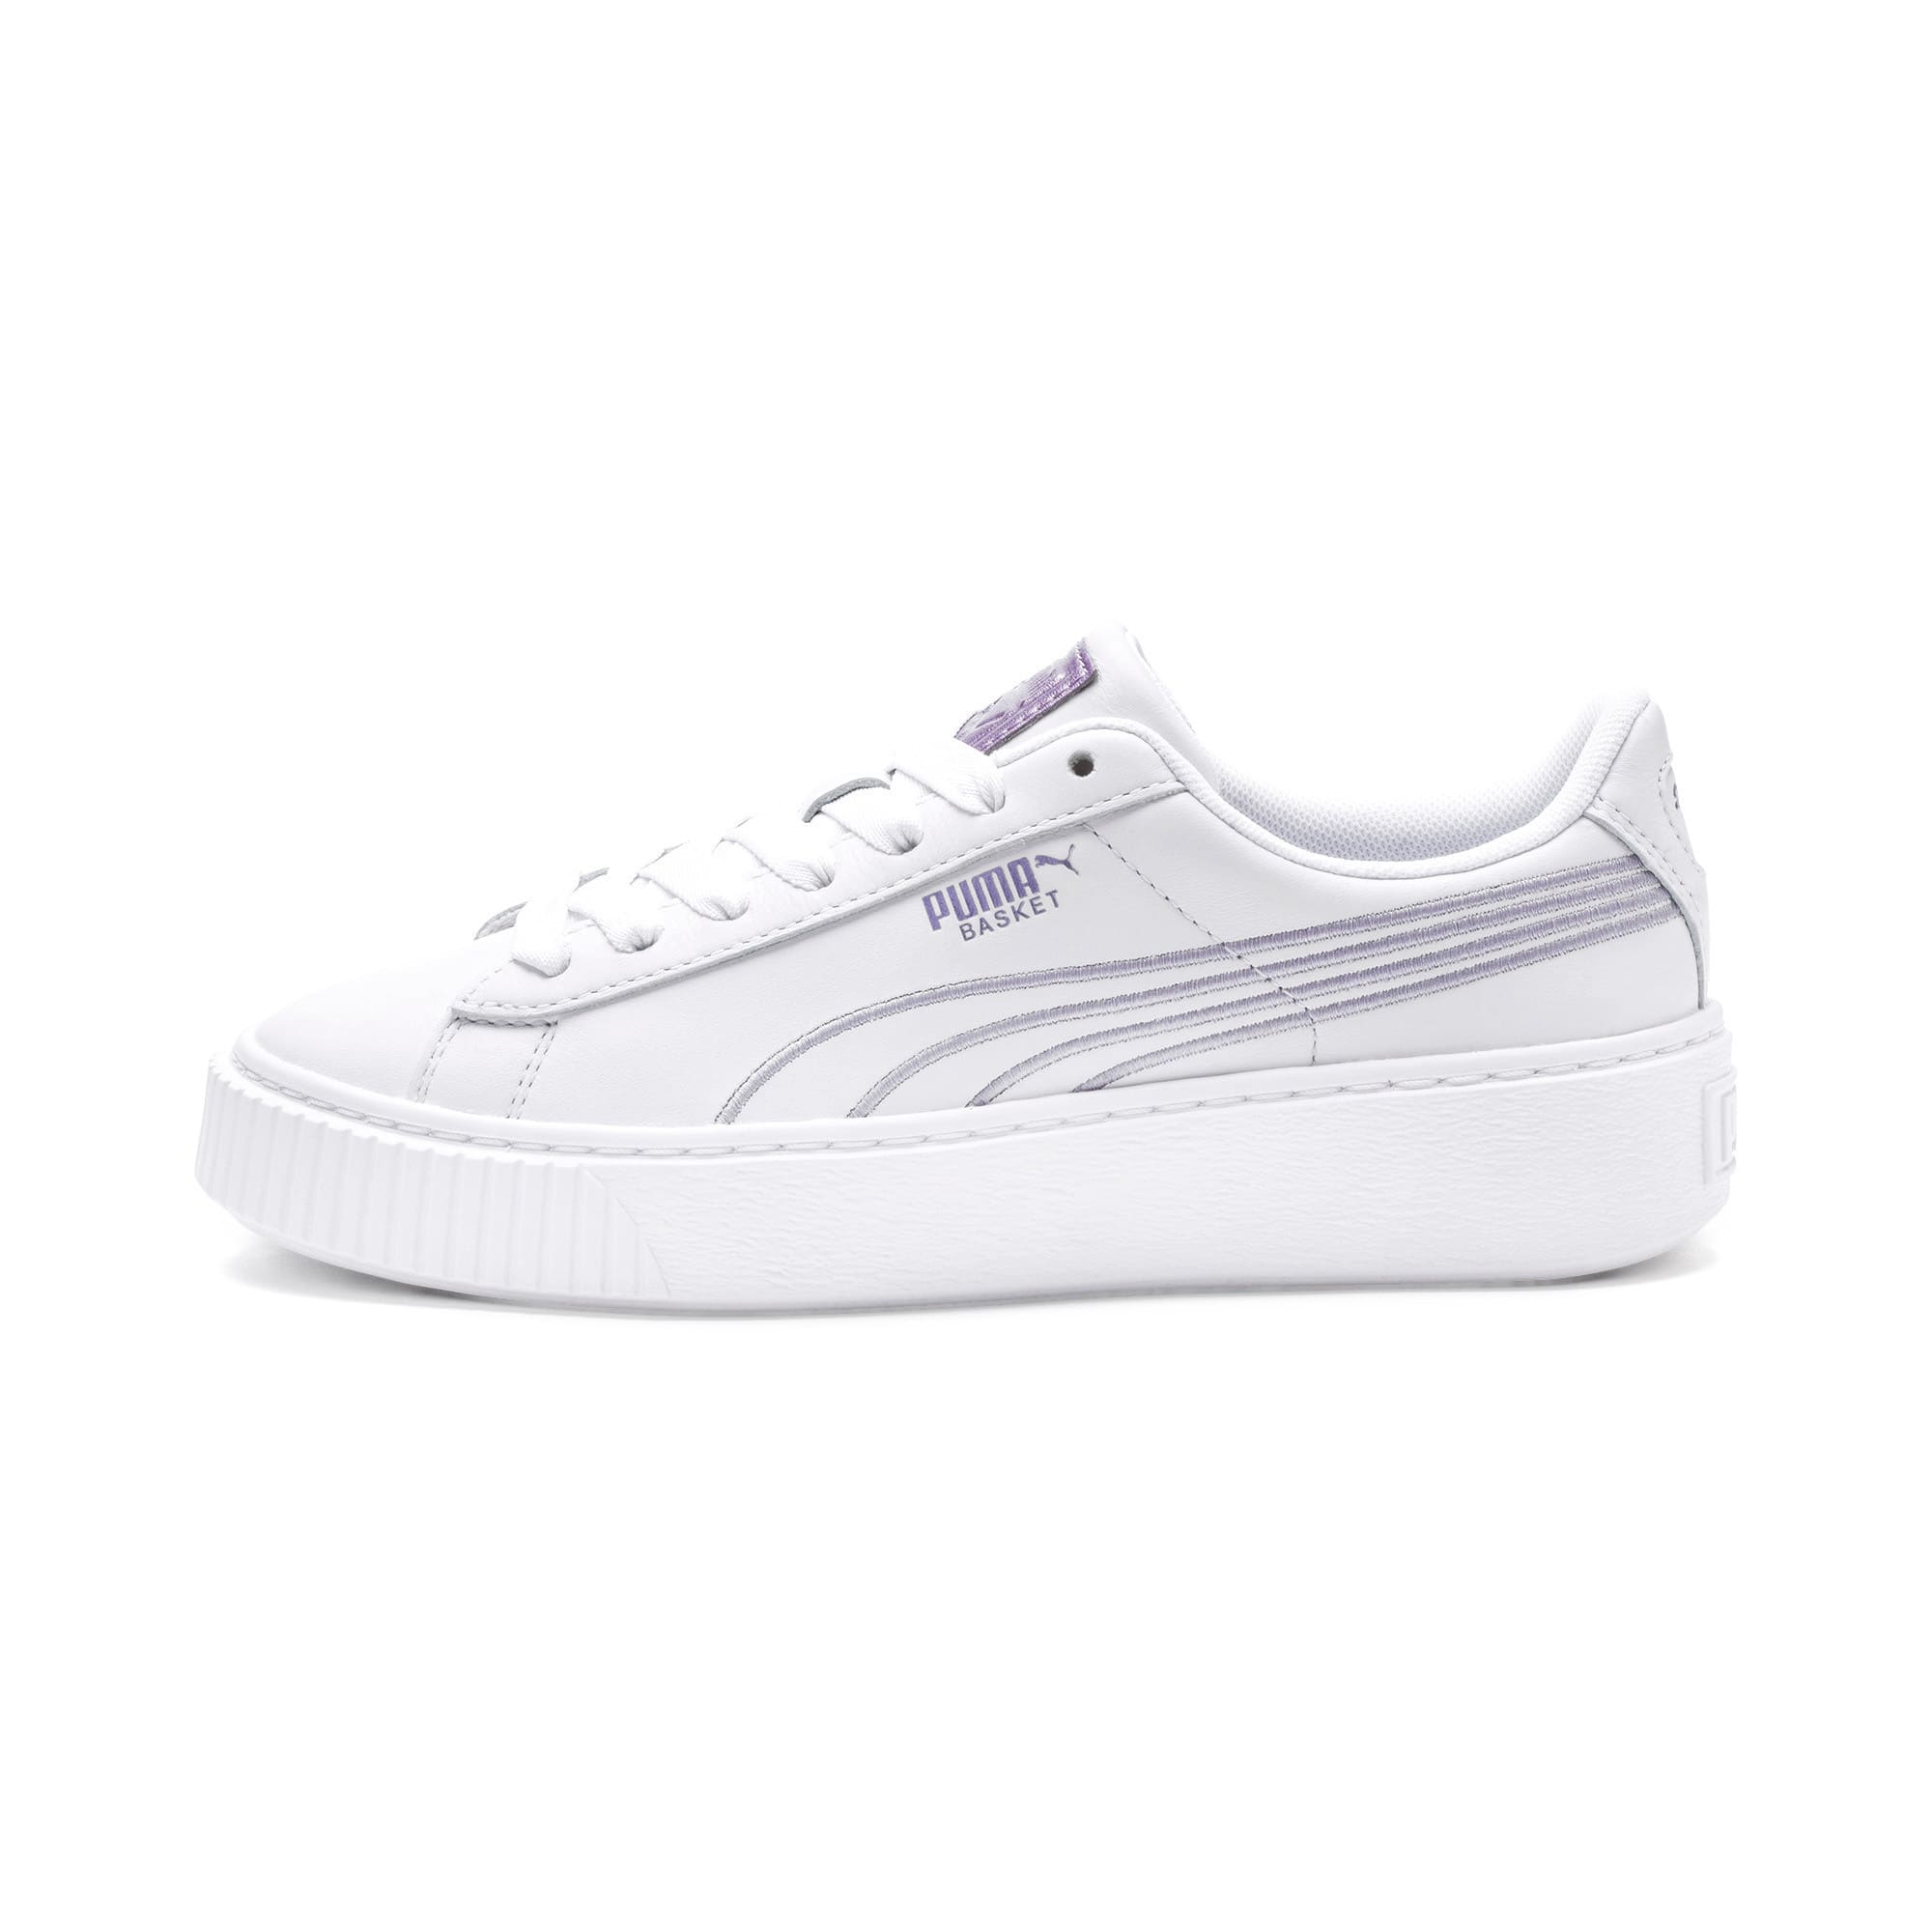 Thumbnail 1 of Platform Twilight Wn's, Puma White-Sweet Lavender, medium-IND